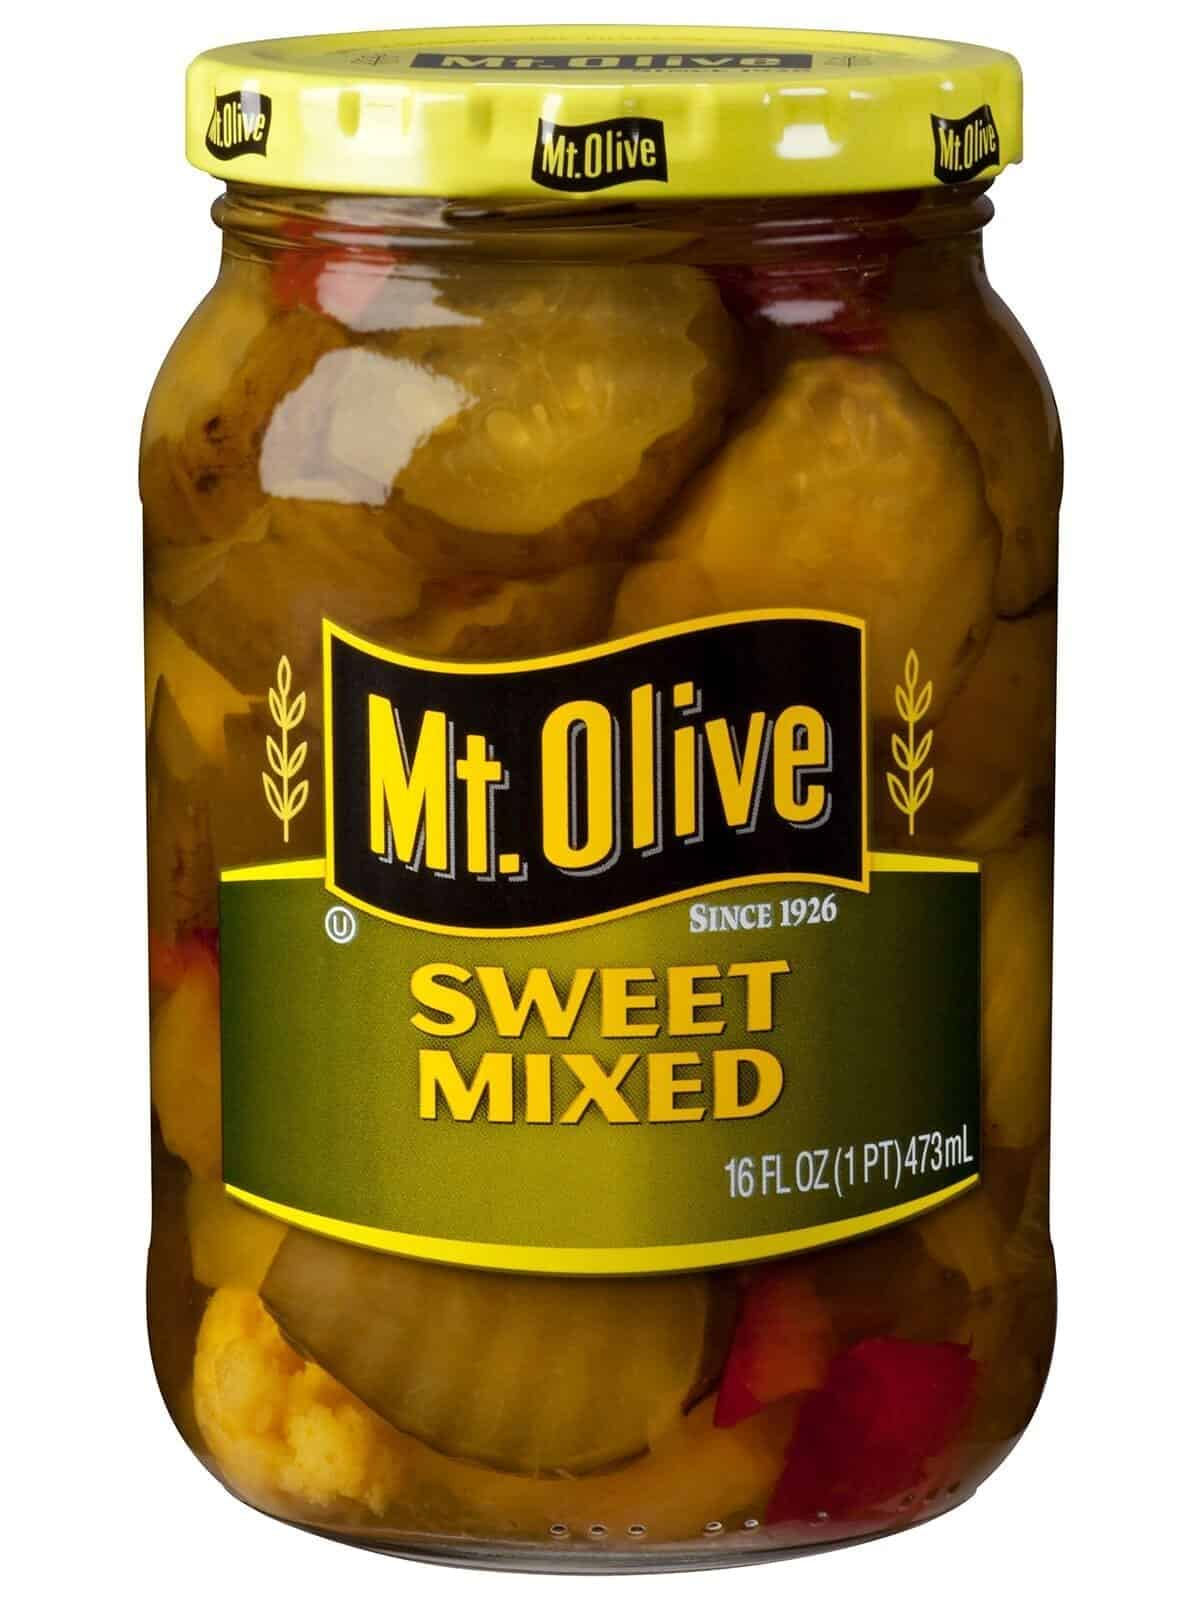 Mt. Olive Sweet Mixed Jar